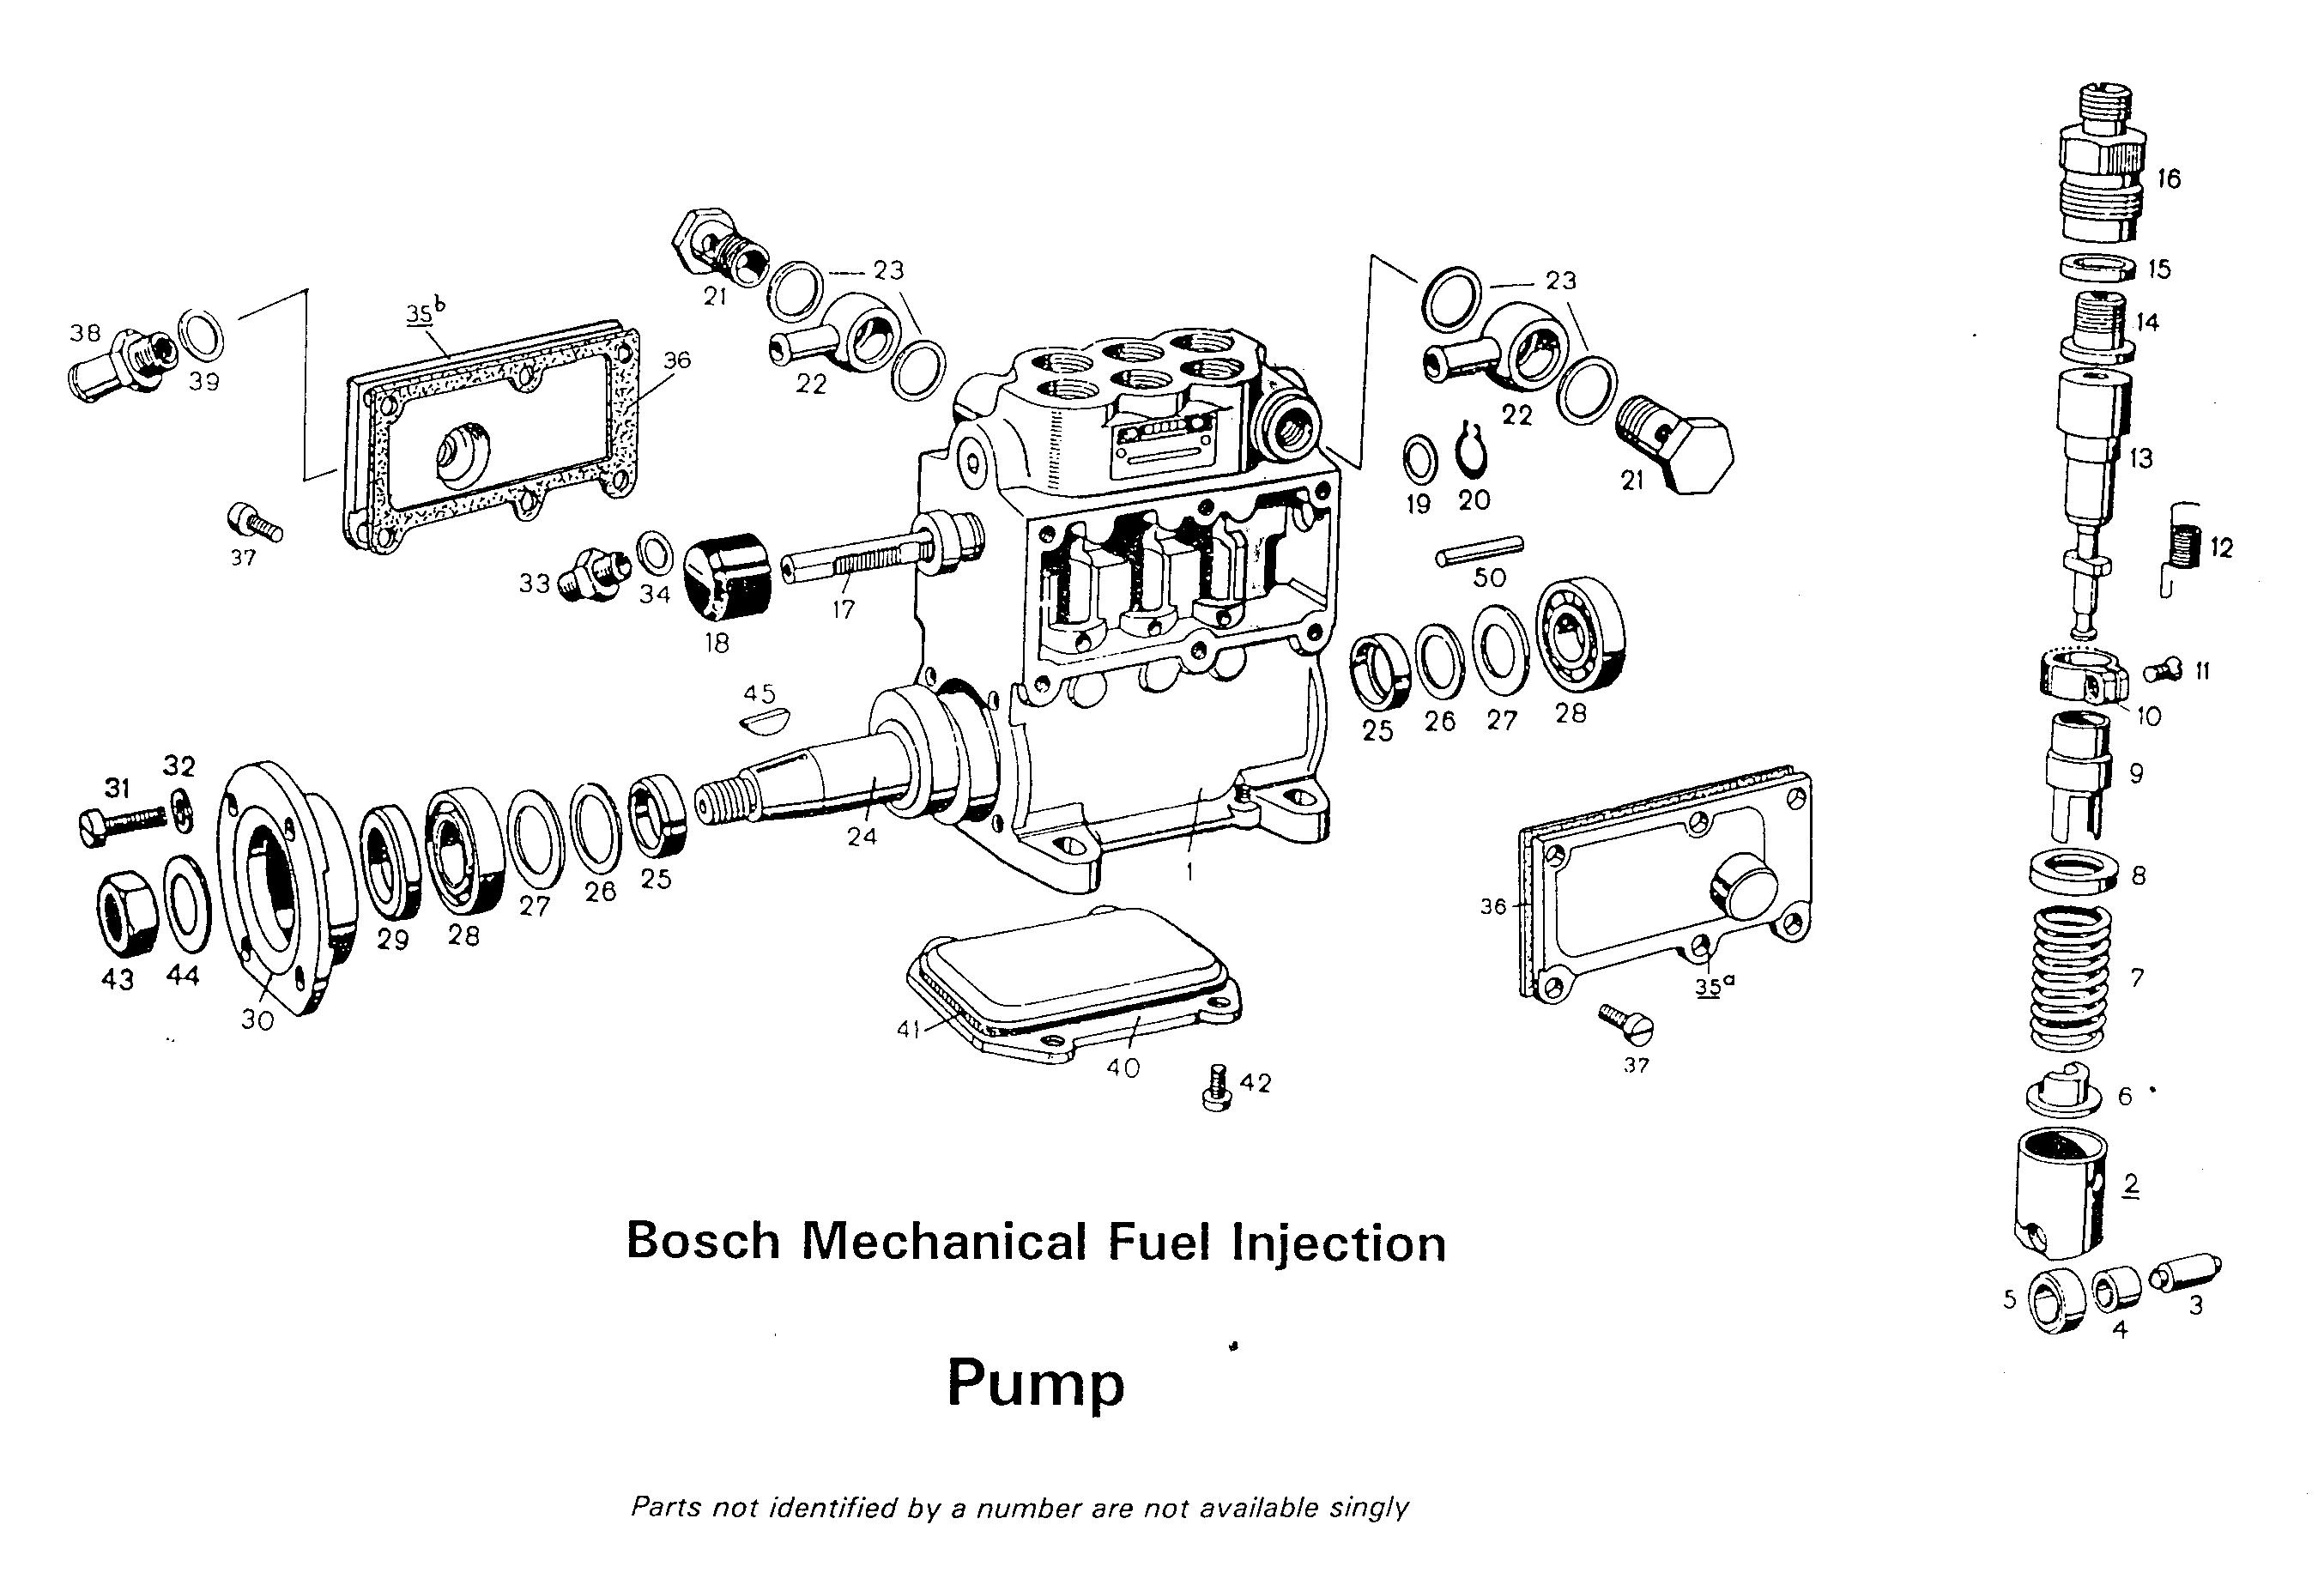 pump[1] bosch p7100 diagram bosch free image about wiring diagram P7100 Injection Pump Adjustments at readyjetset.co